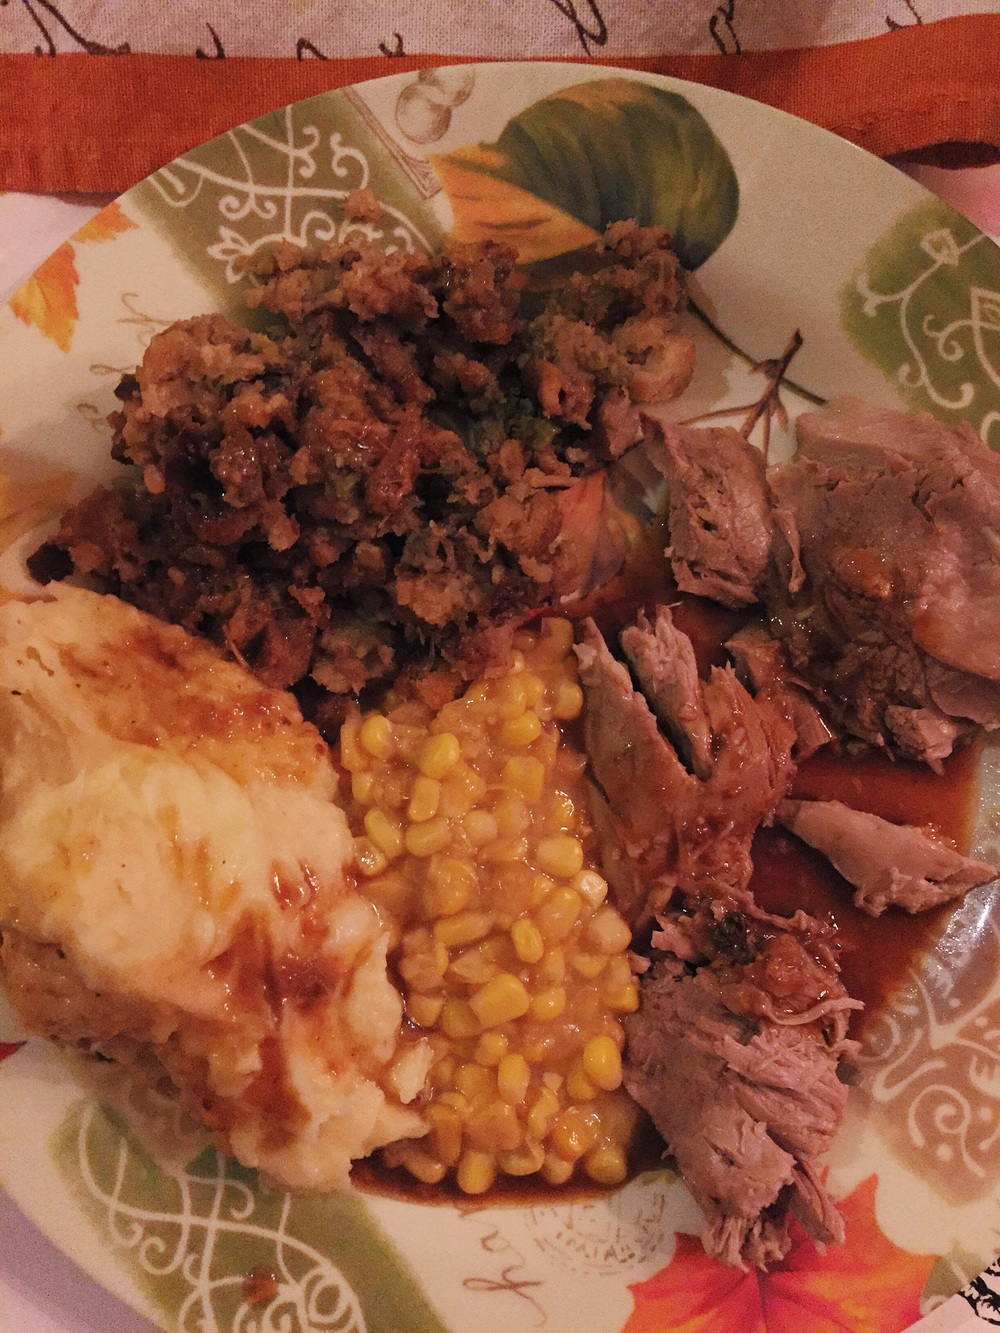 Thanksgiving Dinner. Wishing I had gone back for seconds!